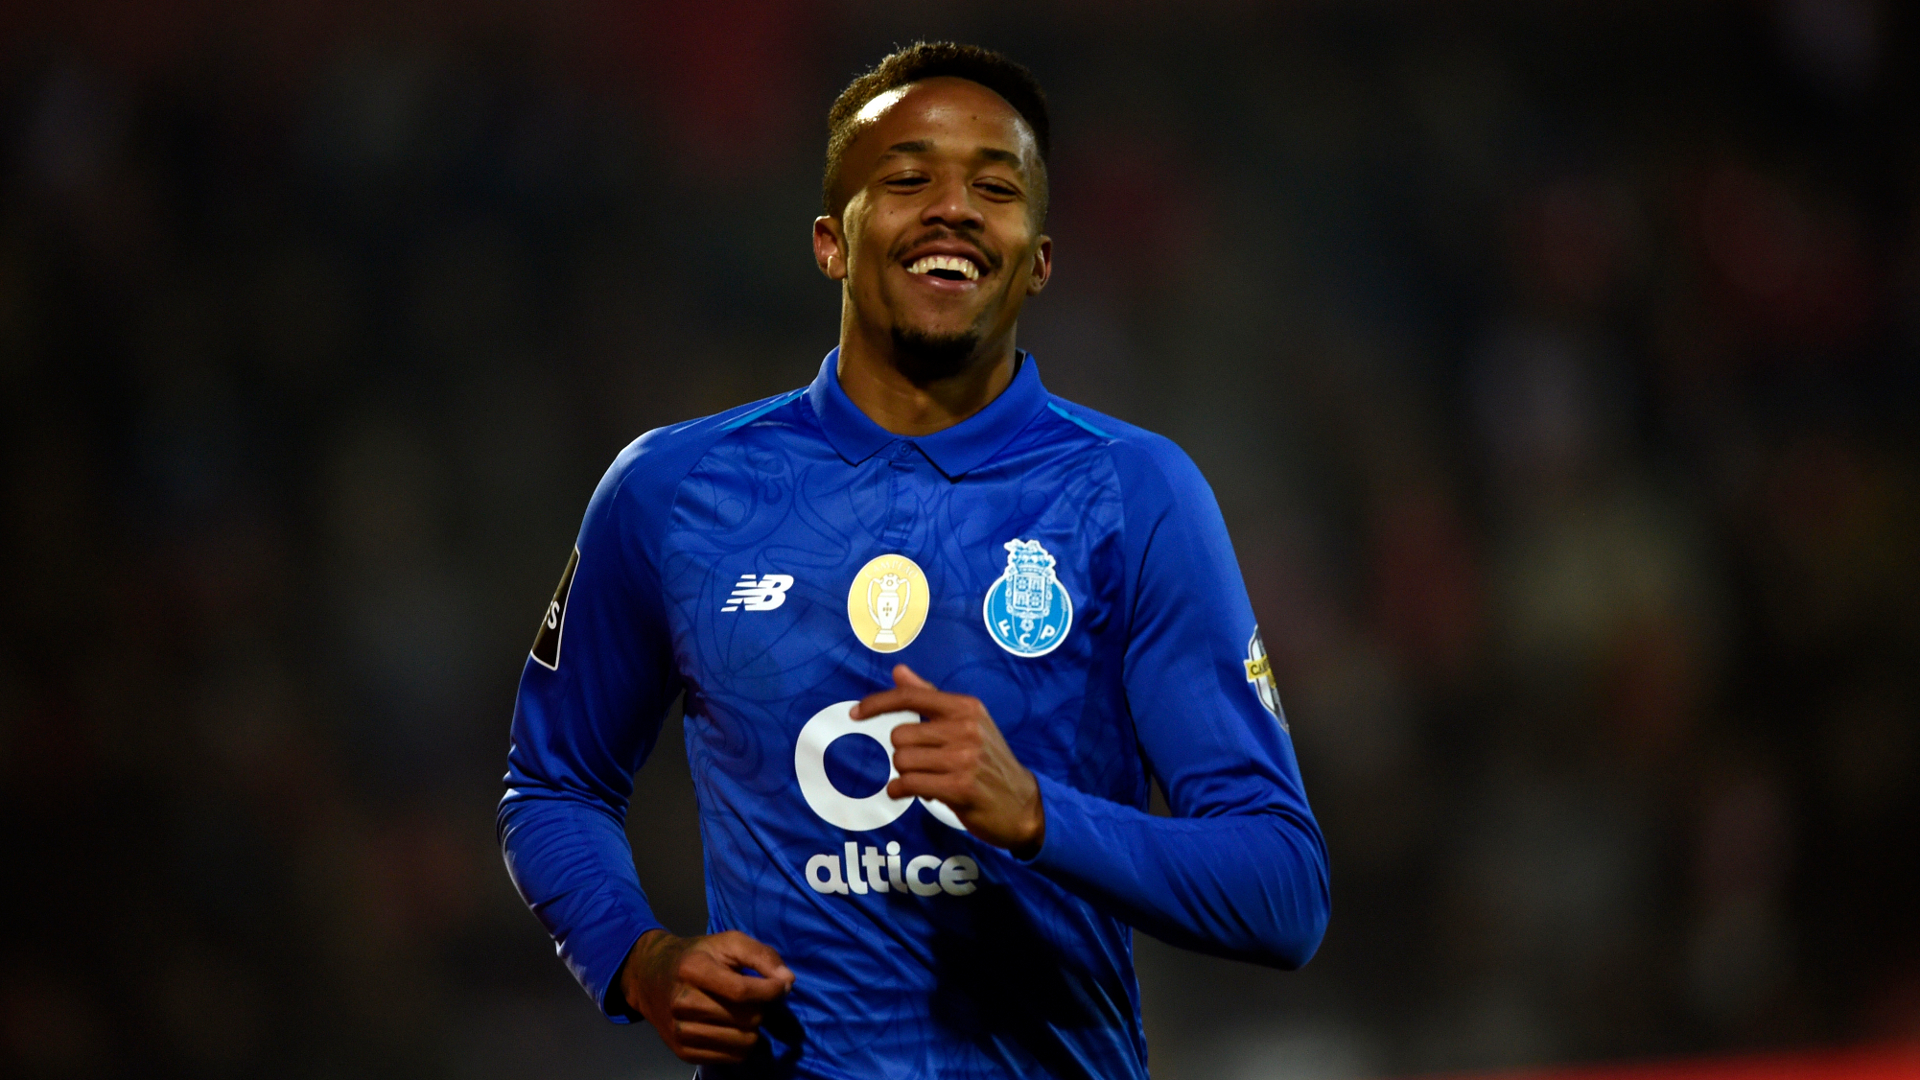 Eder Militao, Real Madrid, Porto